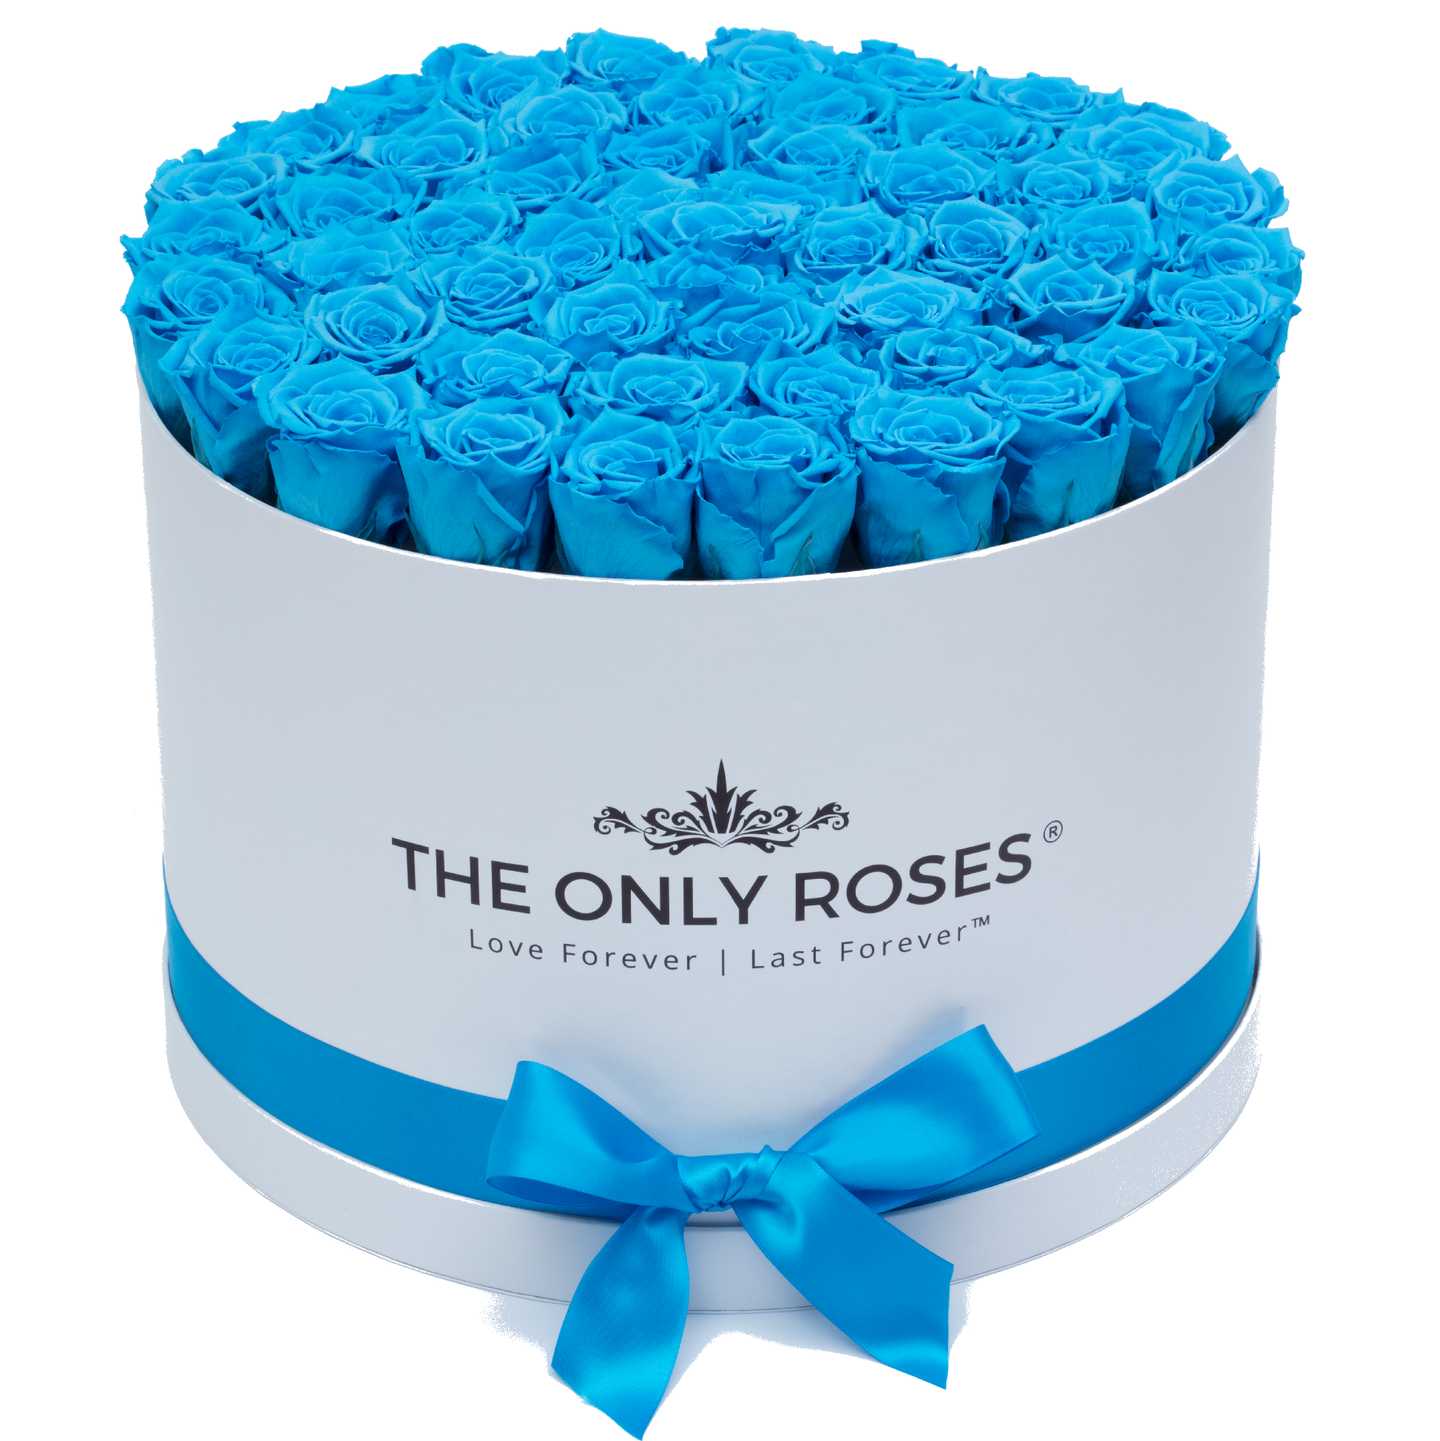 Blue Preserved Roses | Large Round White Huggy Rose Box - The Only Roses